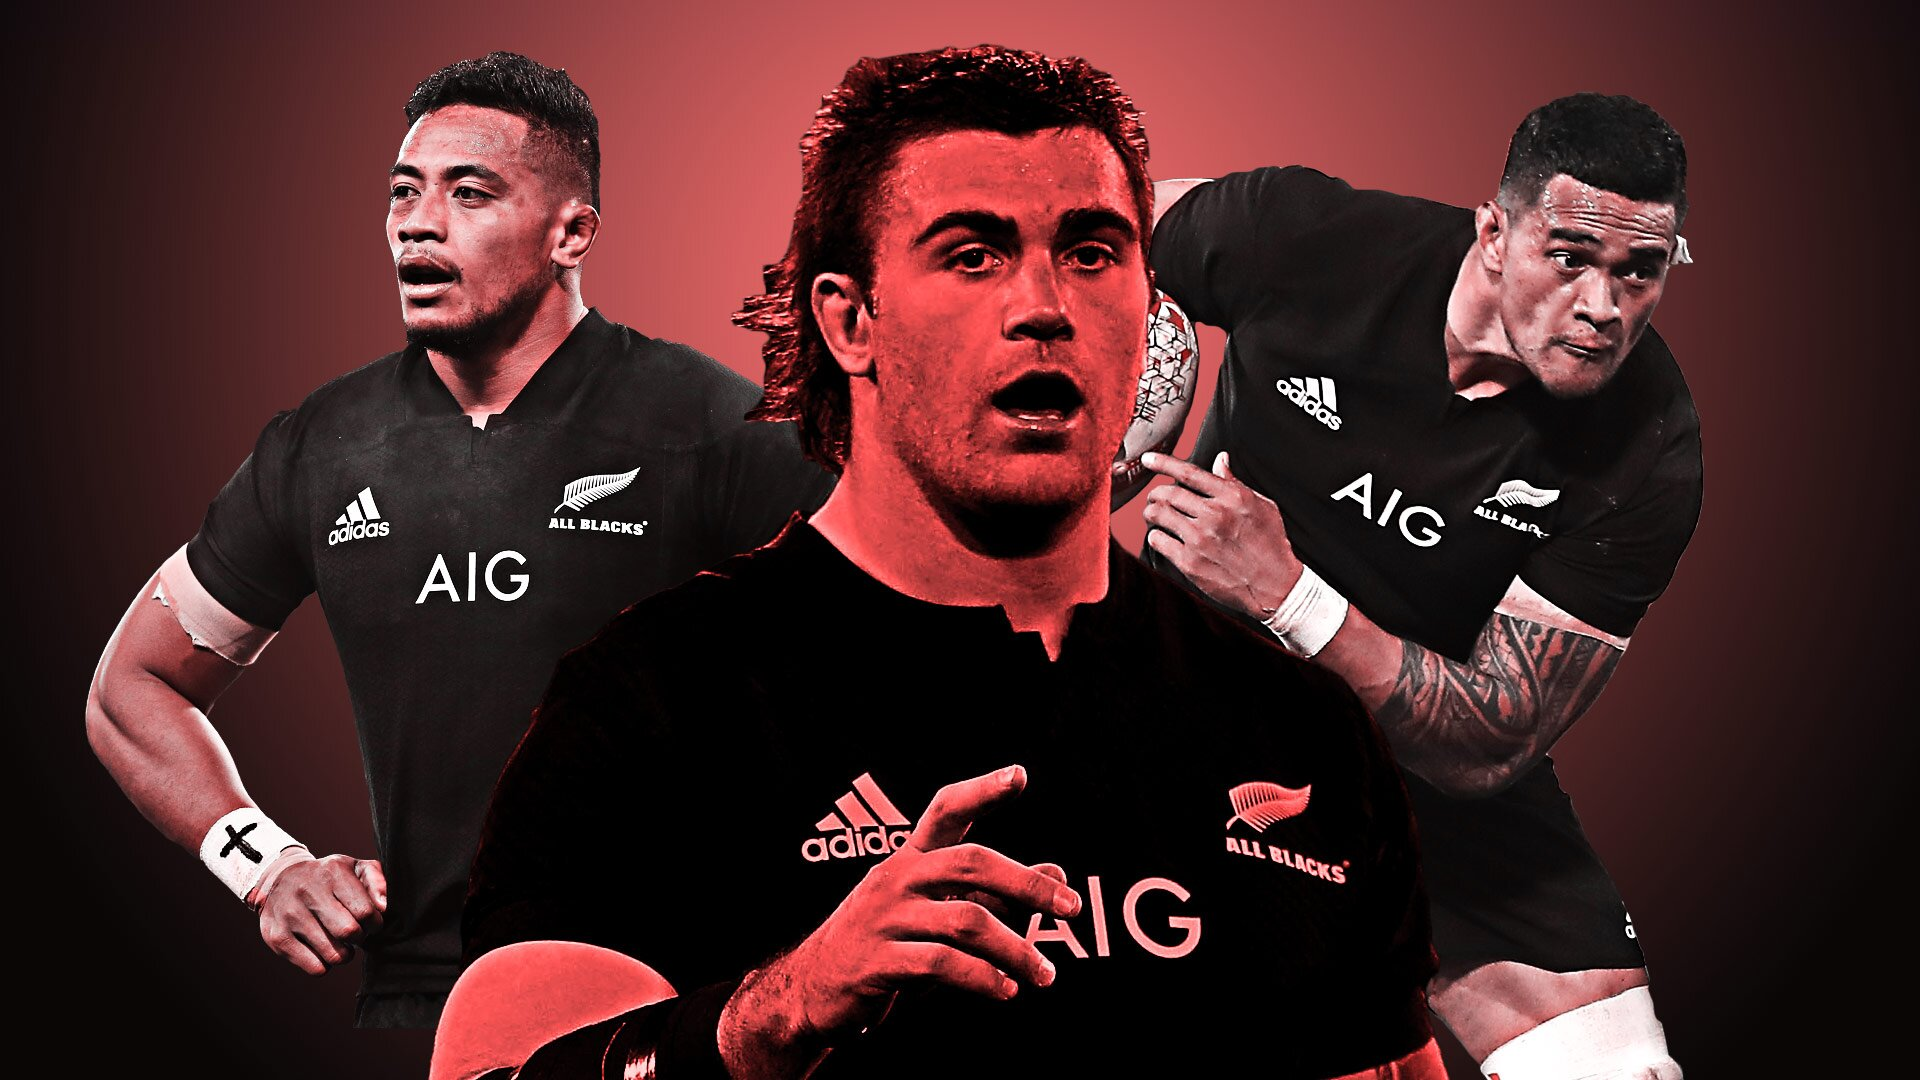 Blindsided: Is No. 6 the All Blacks' biggest World Cup question mark?